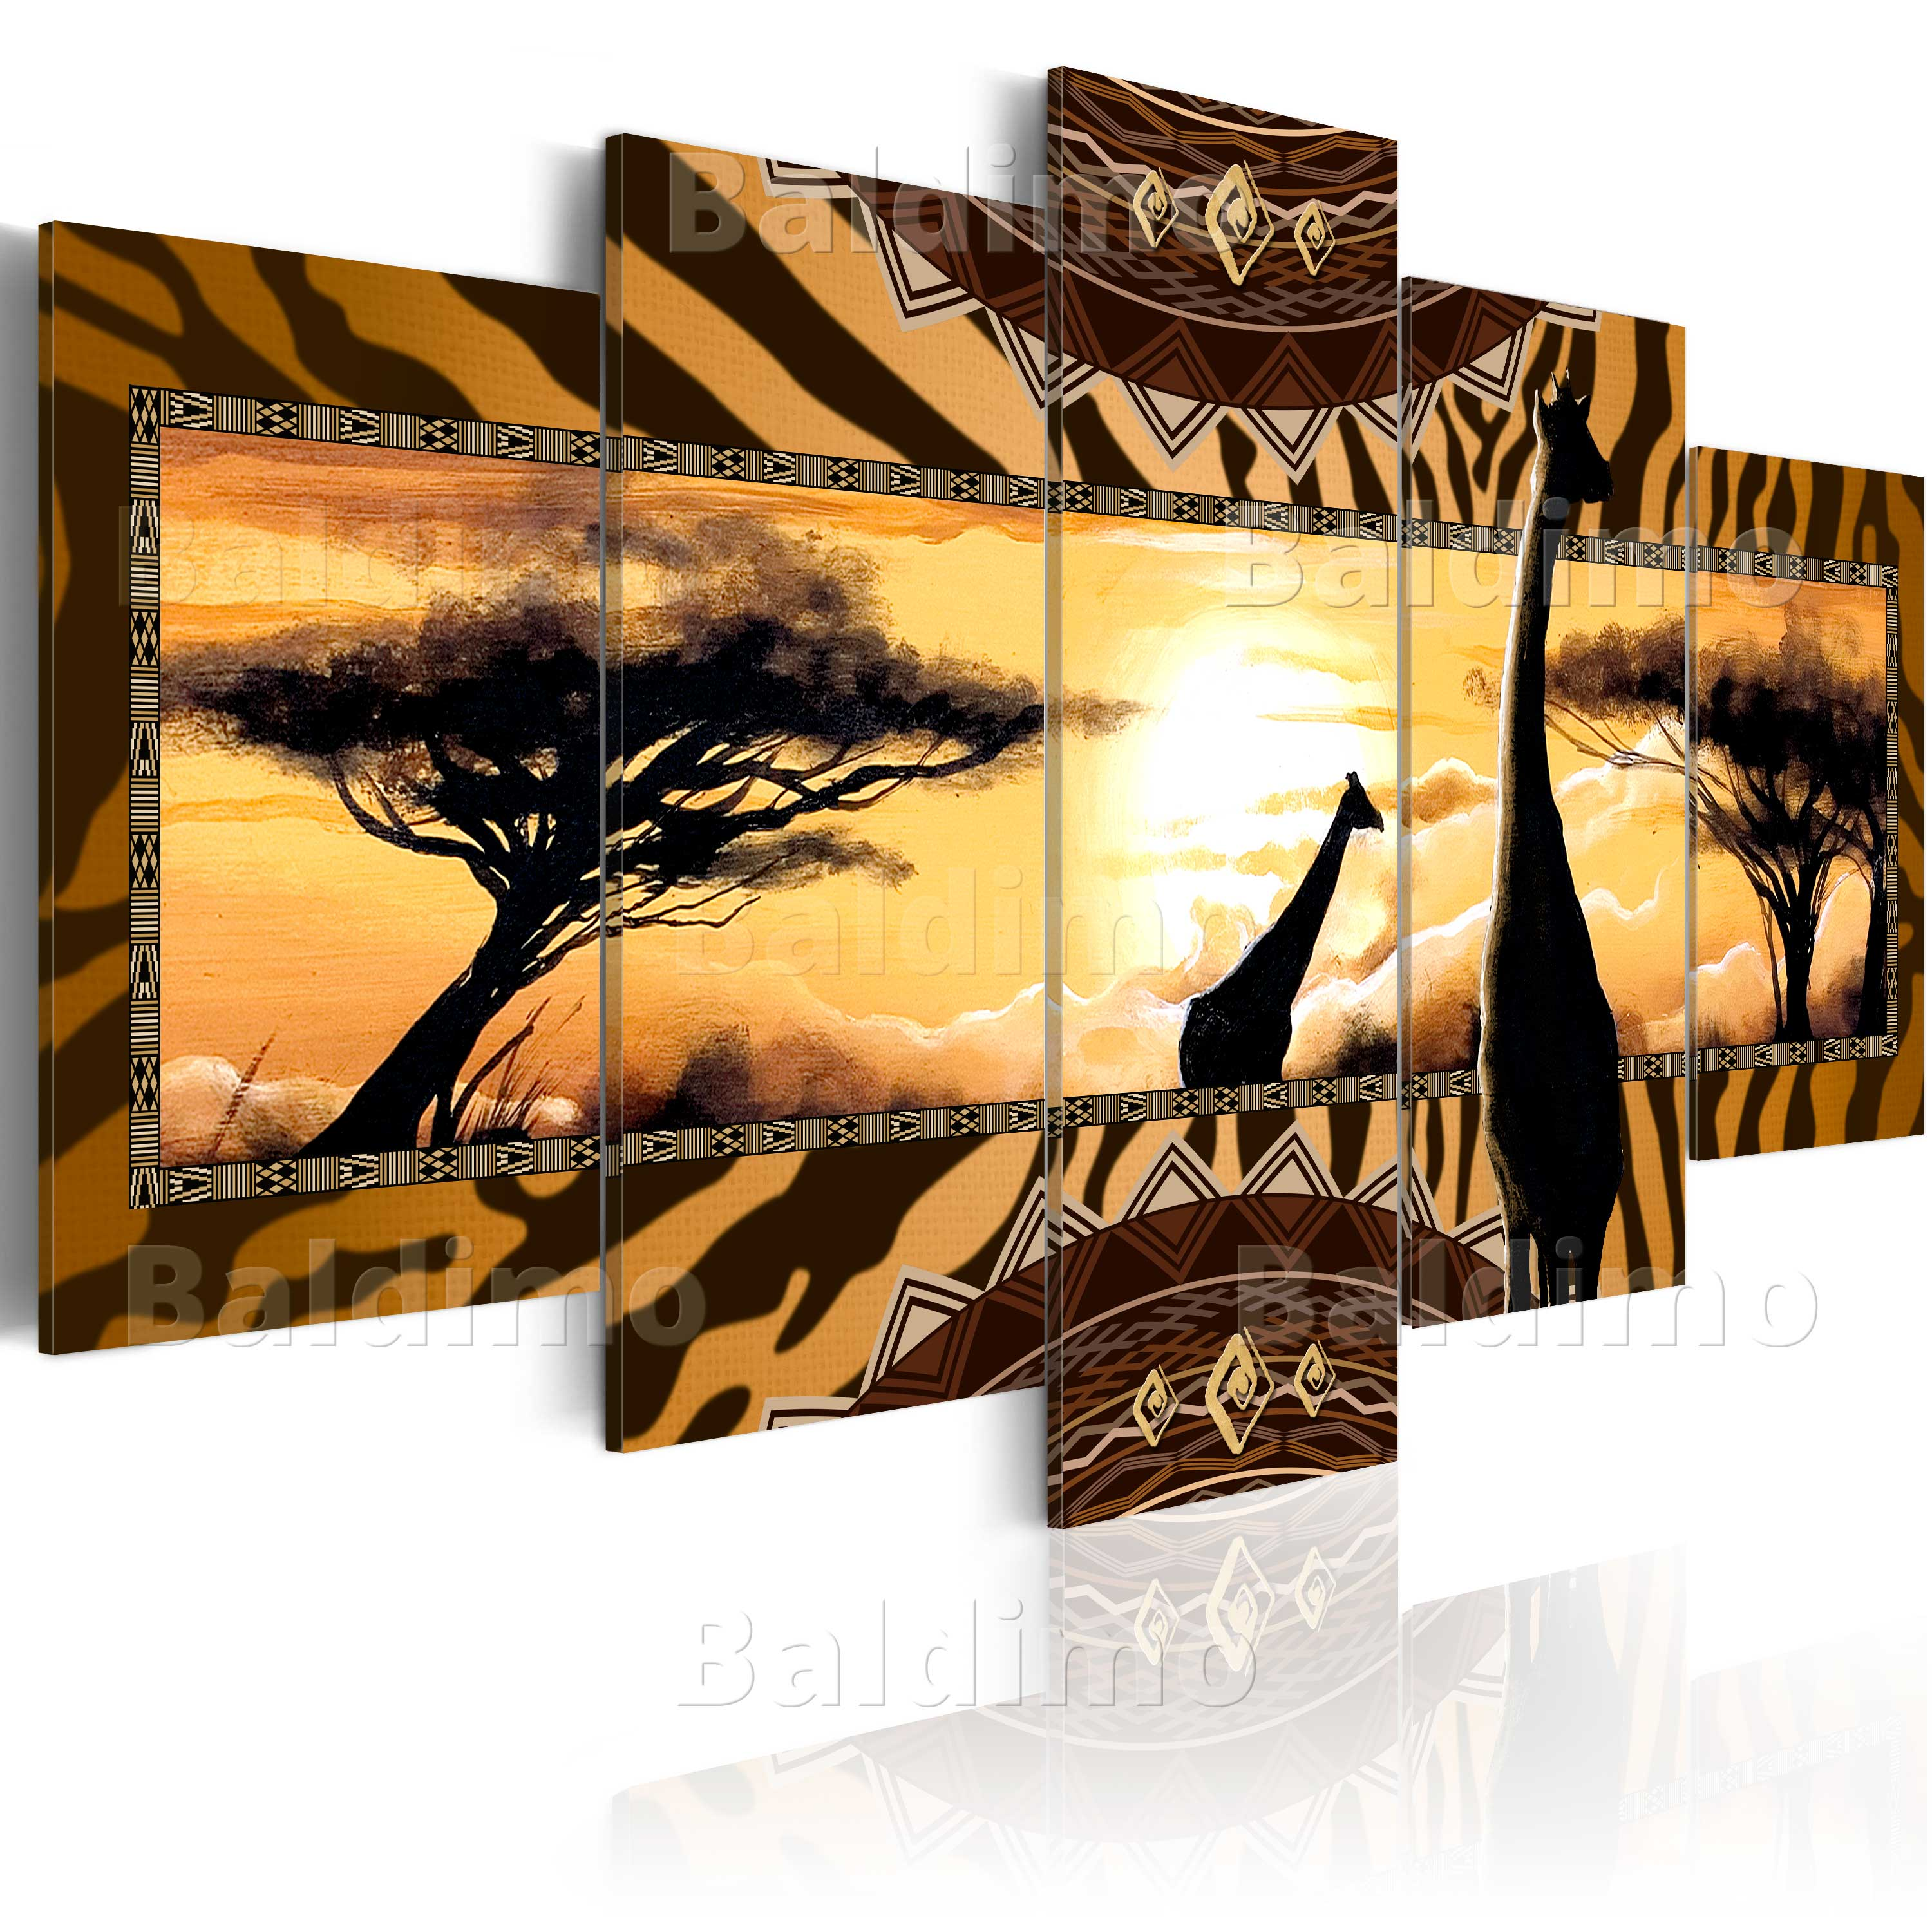 WALL ART PRINT IMAGE PICTURE PHOTO AFRICA c A 0035 b m eBay 3000x3000